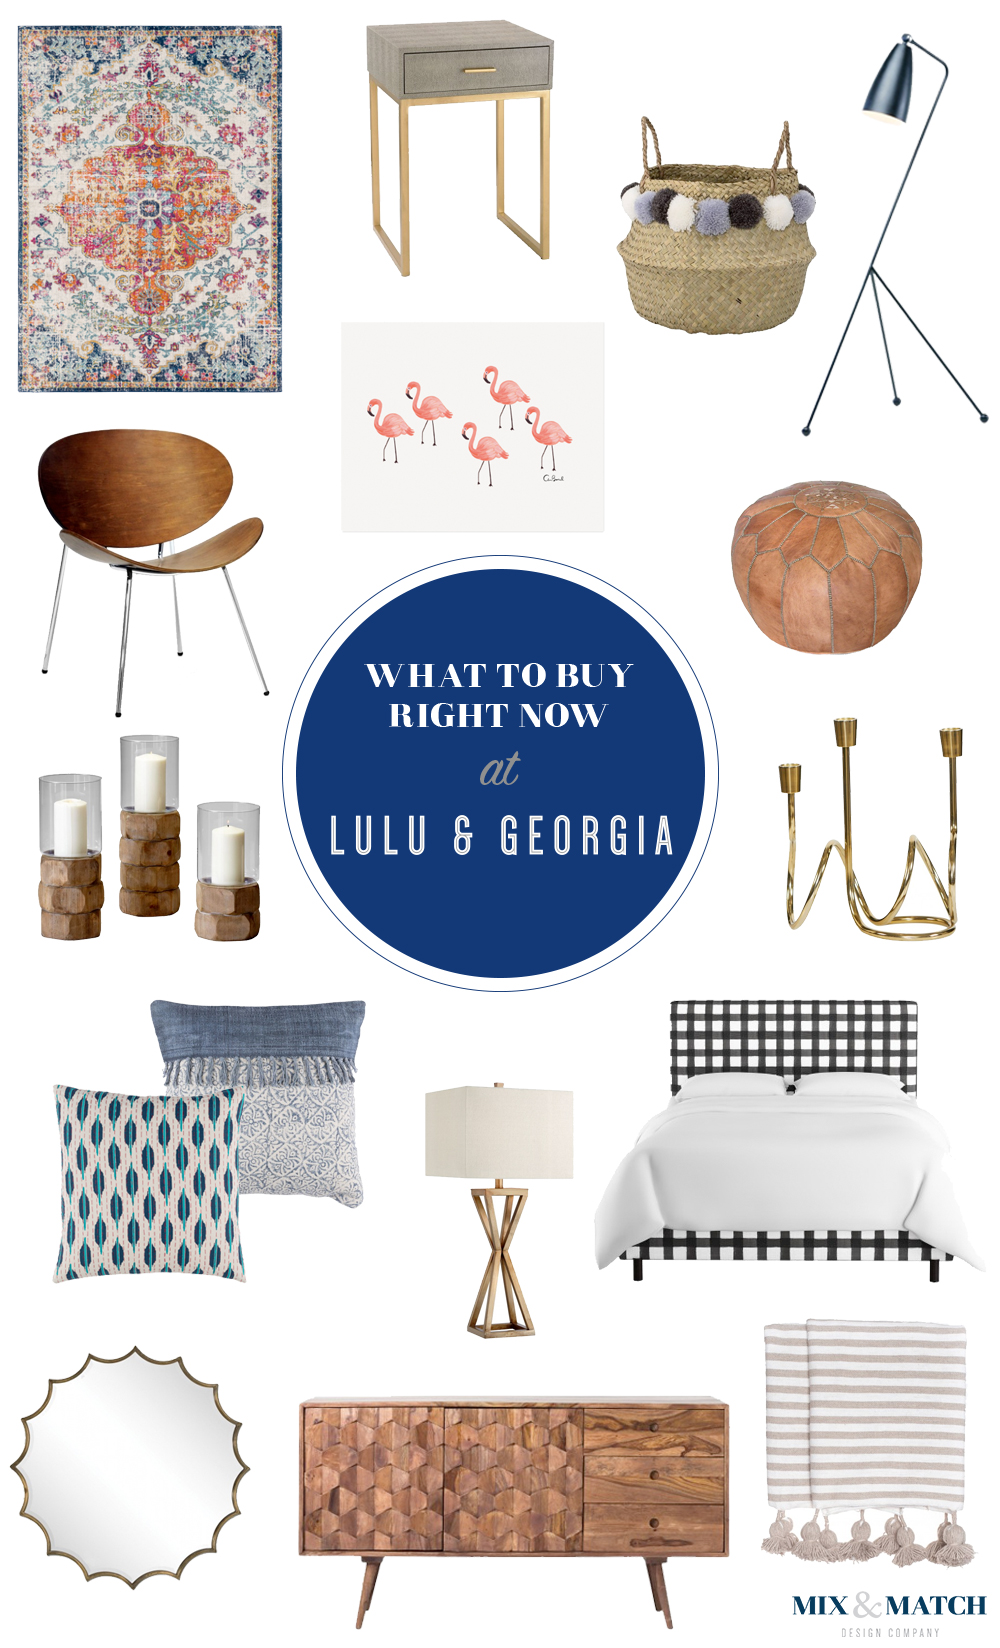 What to shop for at Lulu & Georgia right now. See an interior designer's picks for furniture and home decor!